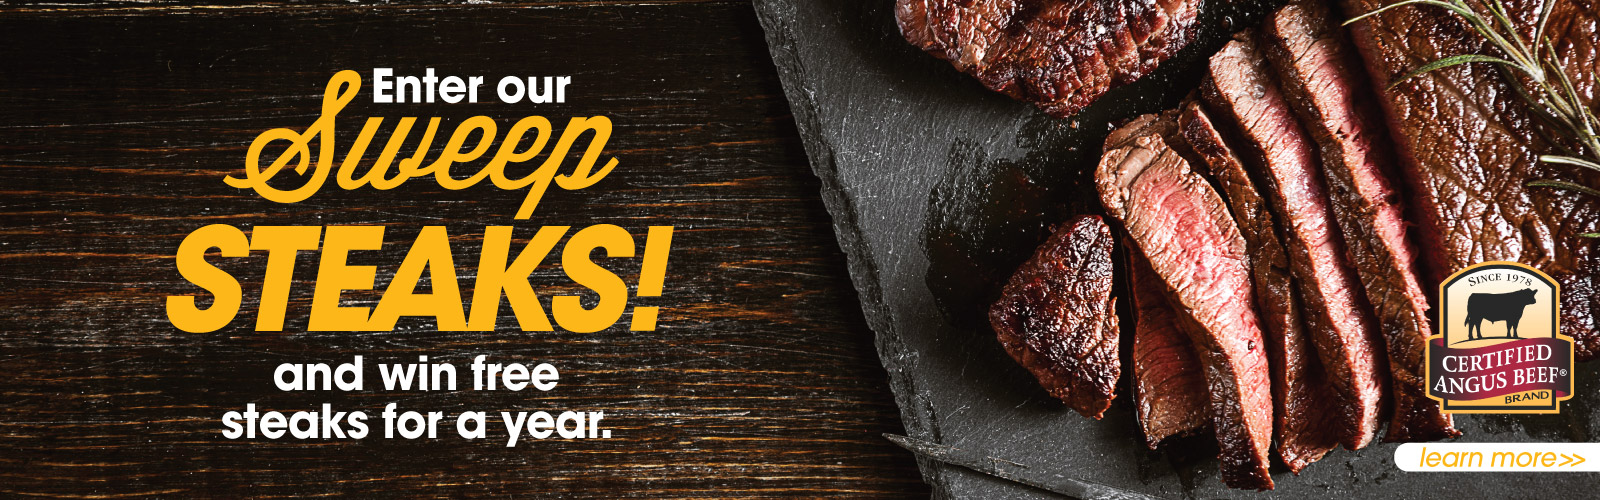 Win Free Steak for a Year!